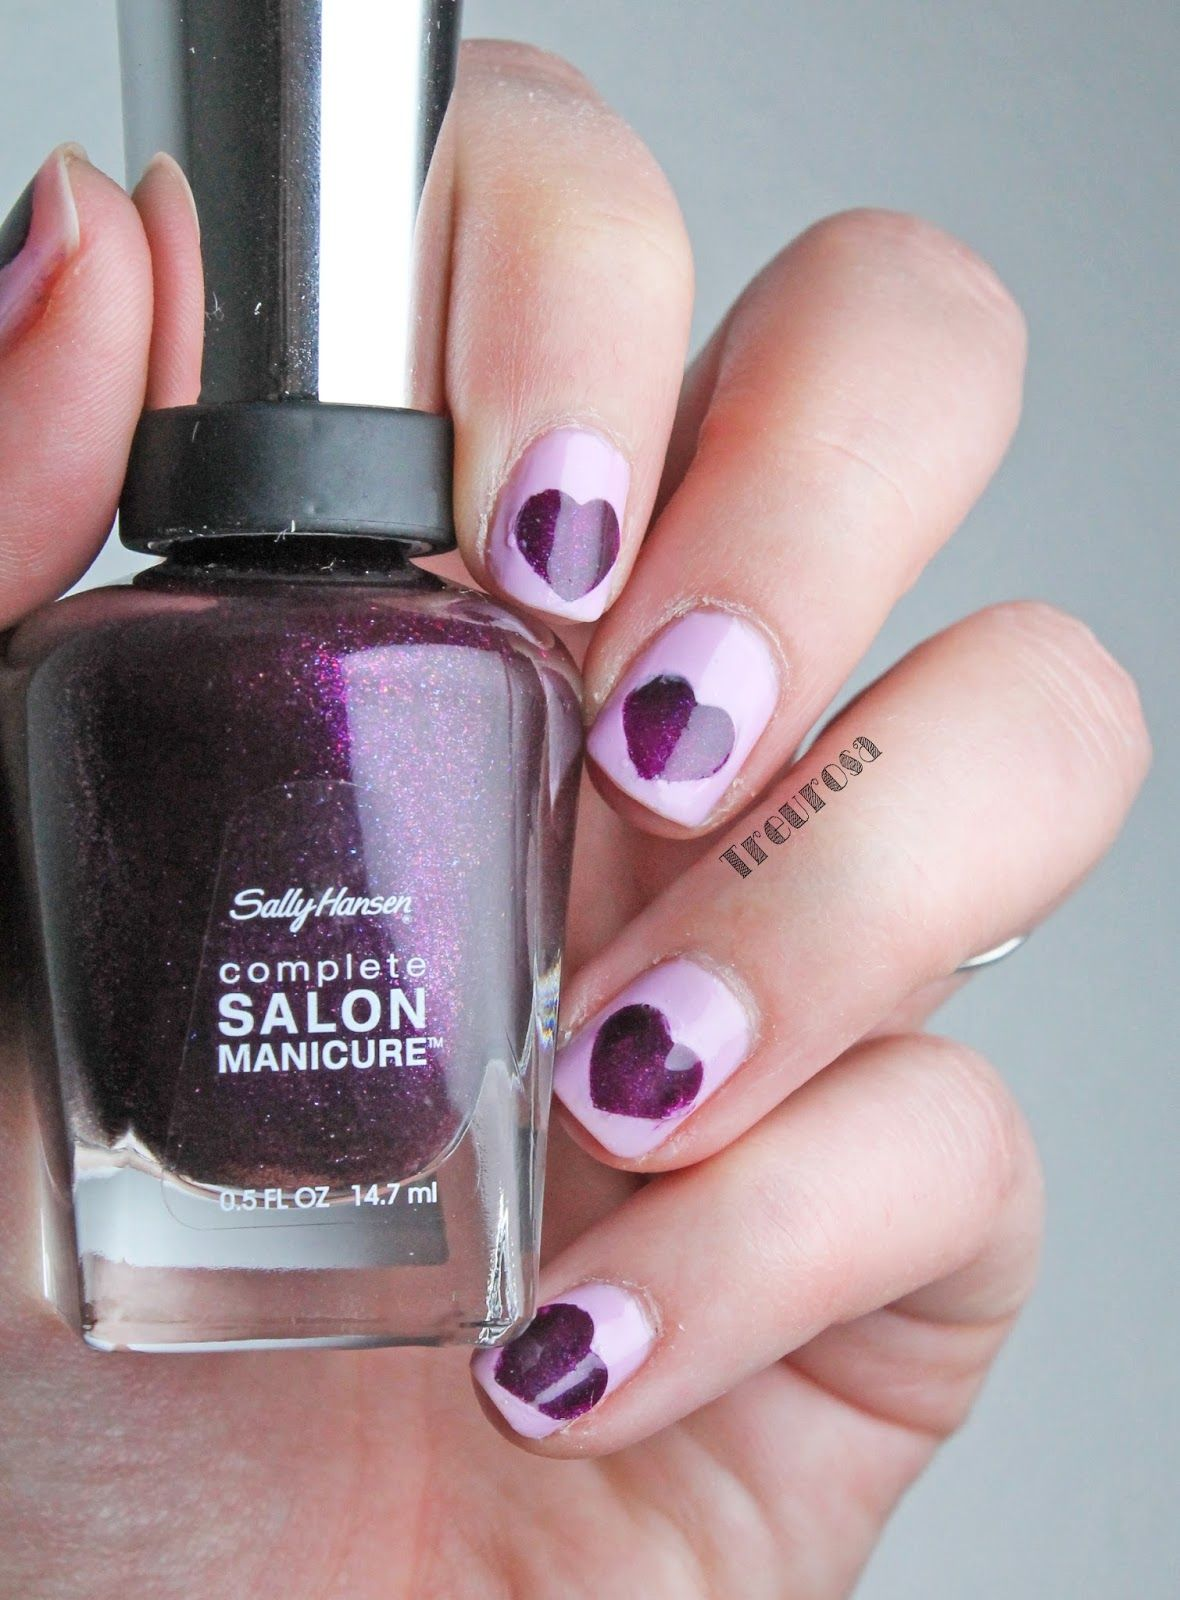 Sally Hansen Complete Salon Manicure | Nails | Pinterest